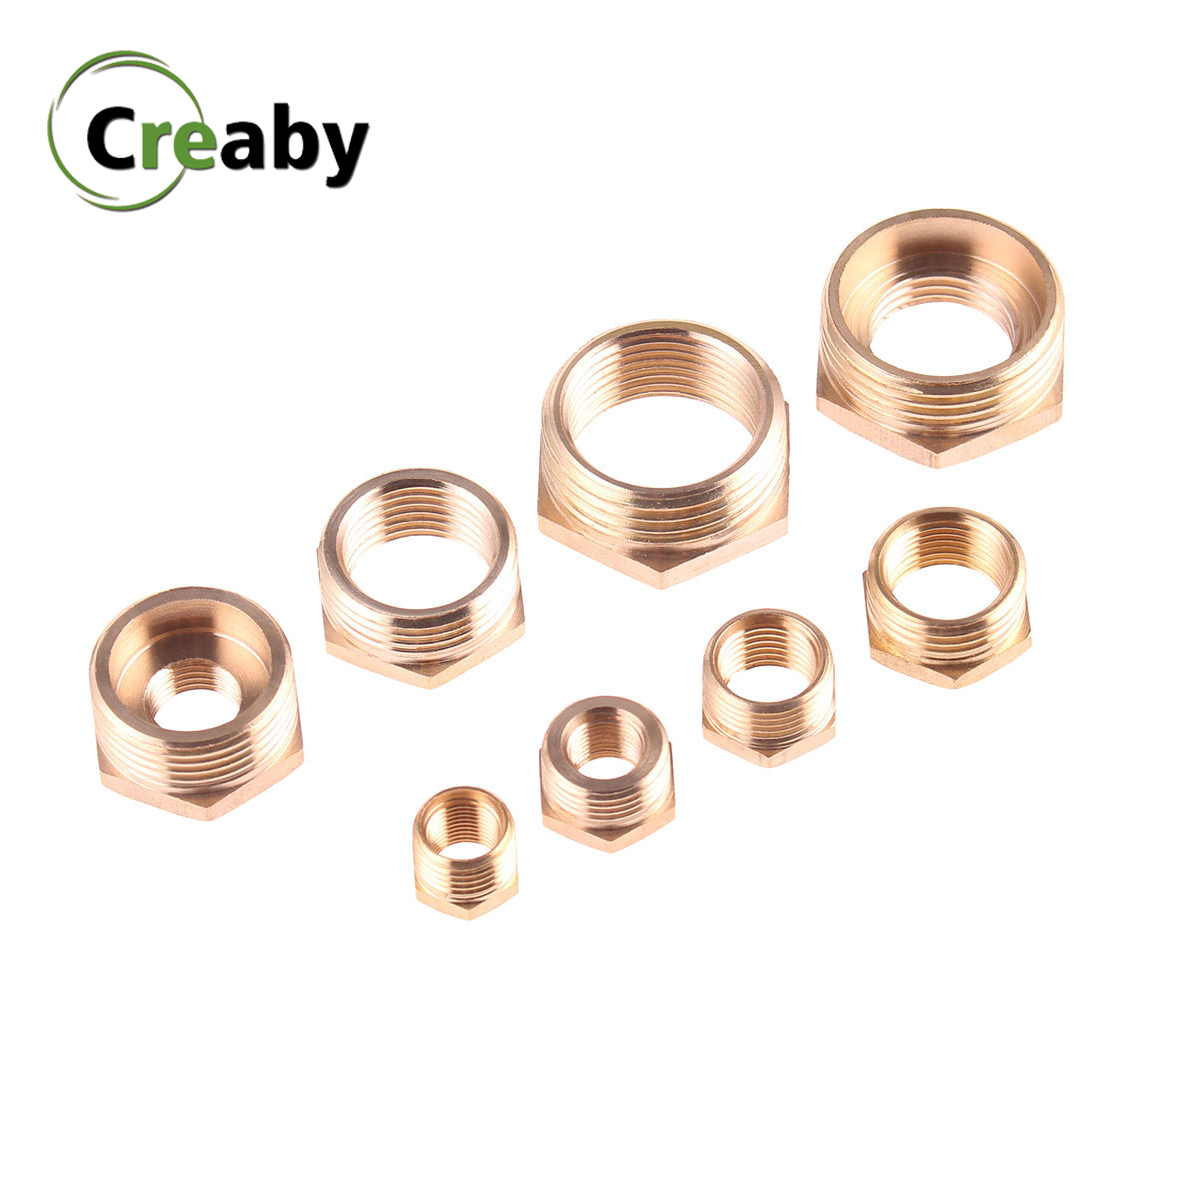 Male To Female Thread Brass Hex Reducer Bushing Reducing Hose Pipe Fitting Connector Adapter M5 1/8